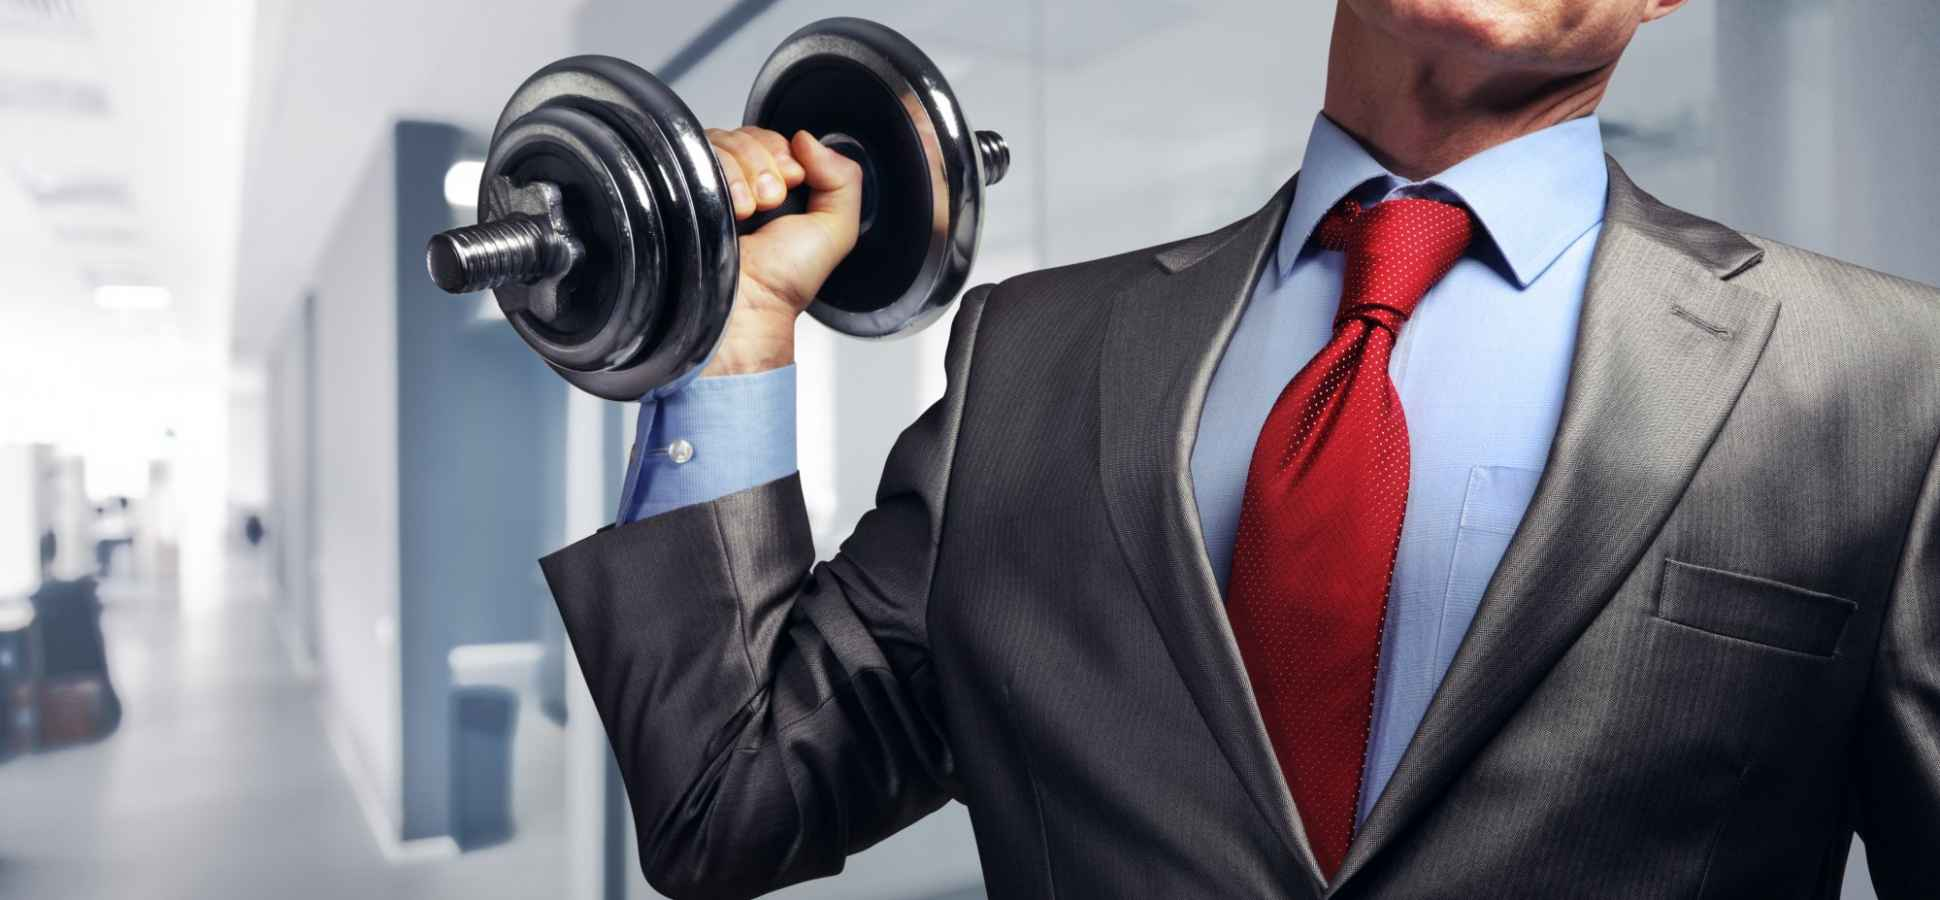 No Excuses: 9 Exercises You Can Do in Your Office